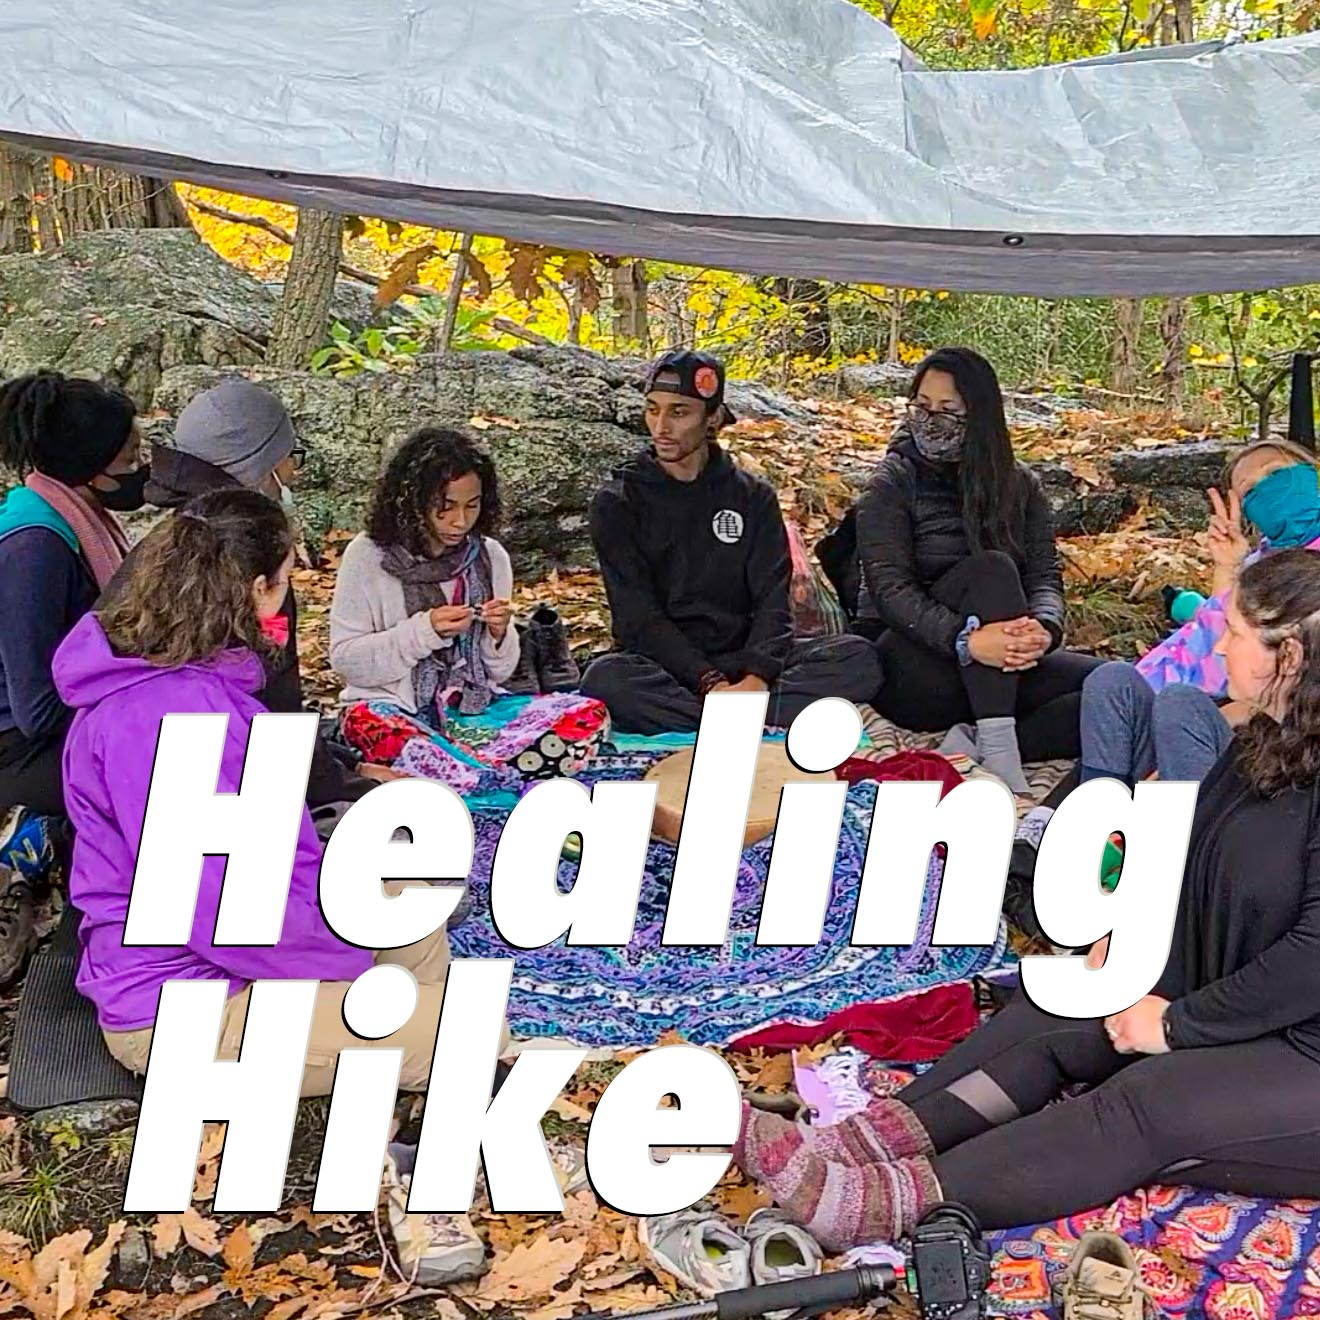 Healing Hike in Collaboration With Ivelise + Alexander